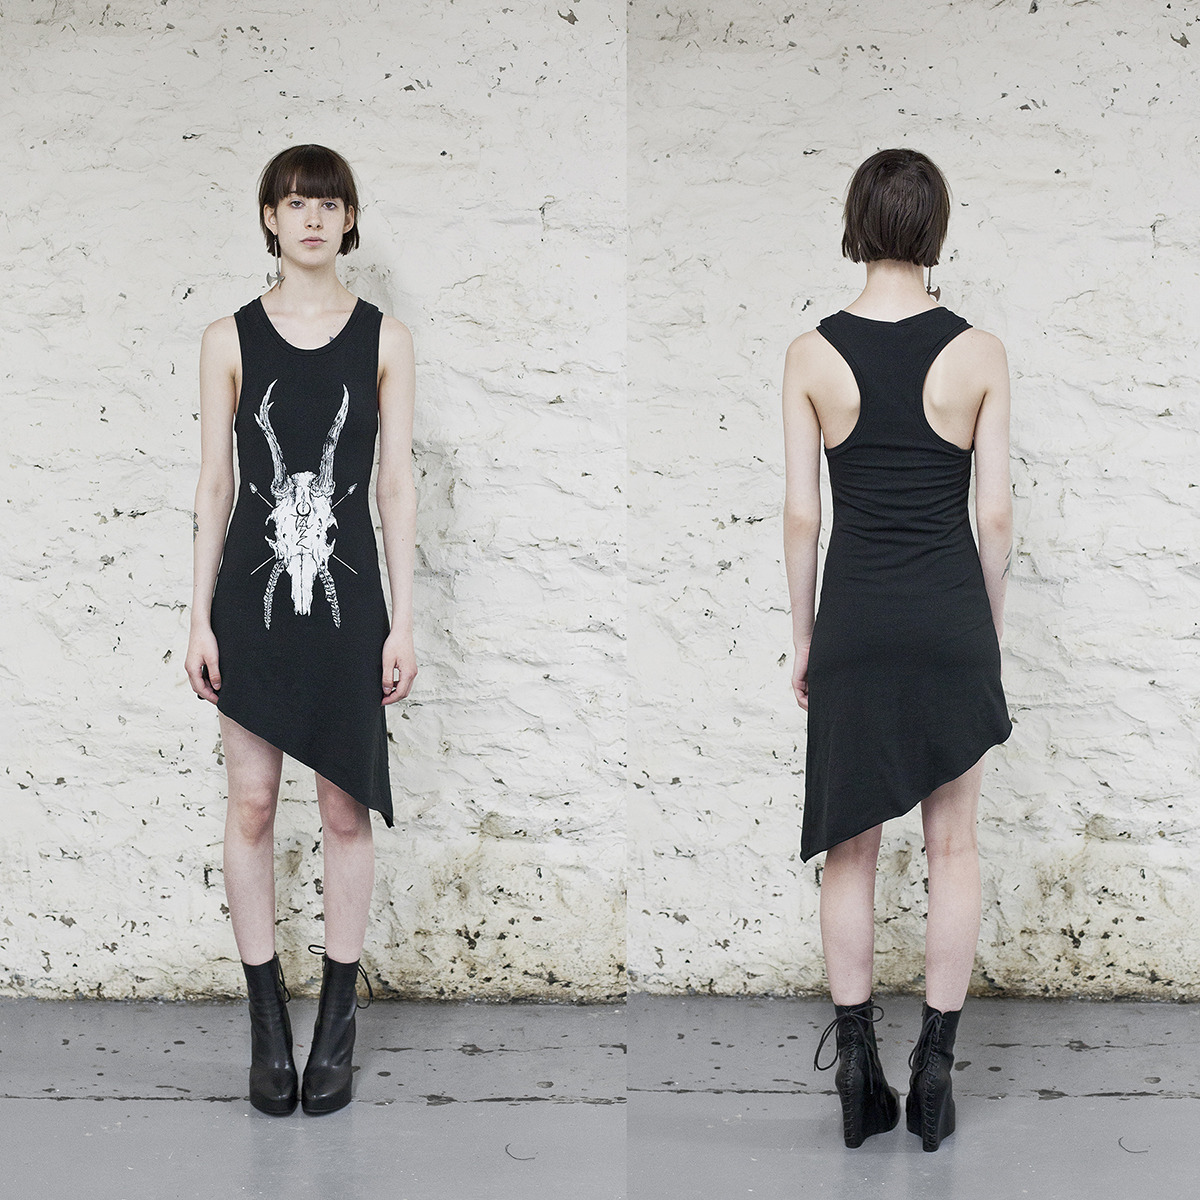 ovate:  Ovate x Clovenhoov limited edition dress hits the shop tonight! Only 30 available. www.ovate.ca